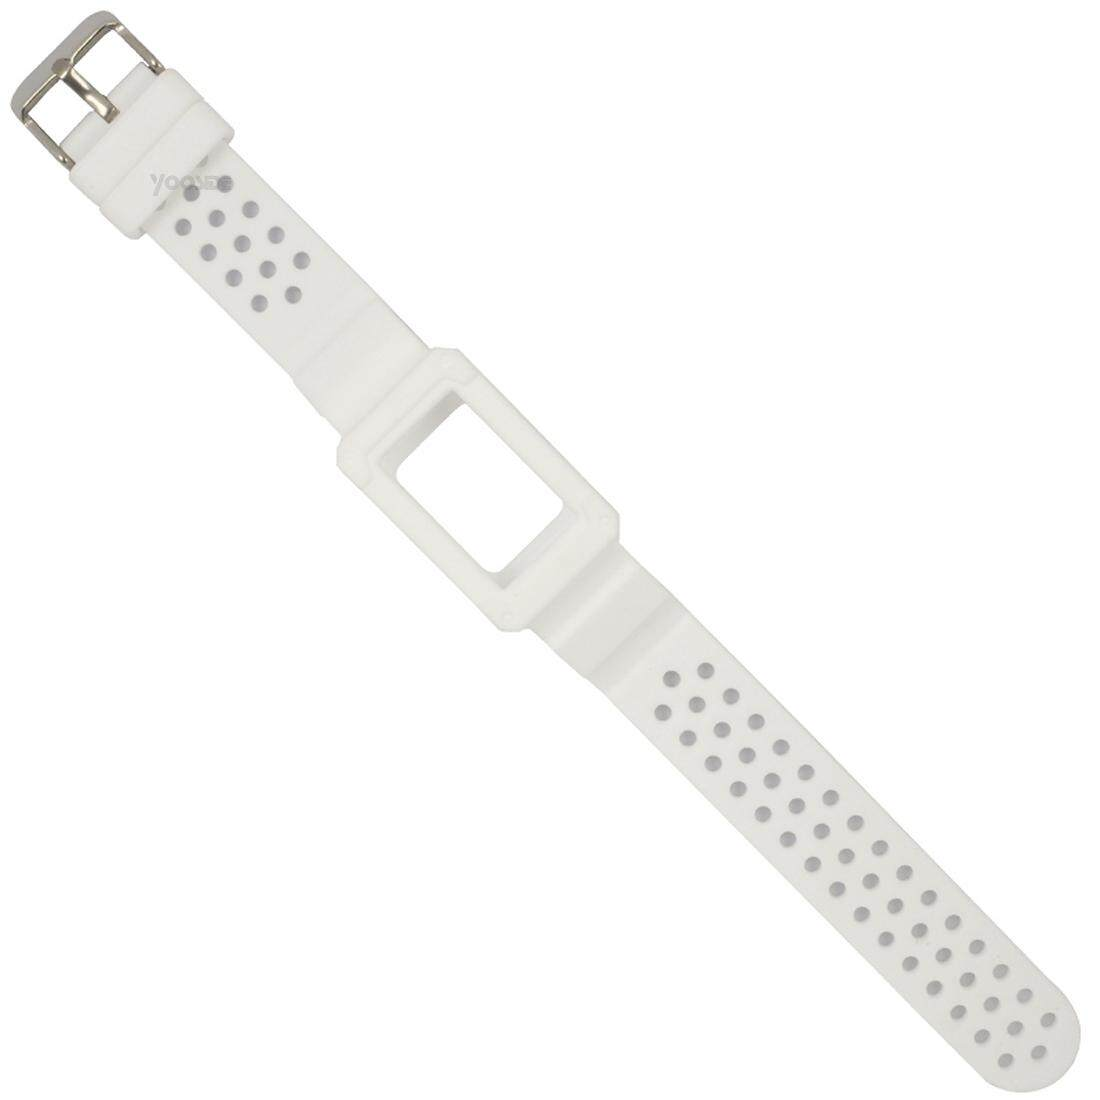 Fitness Tracker Straps for sale - Fitness Watches Straps